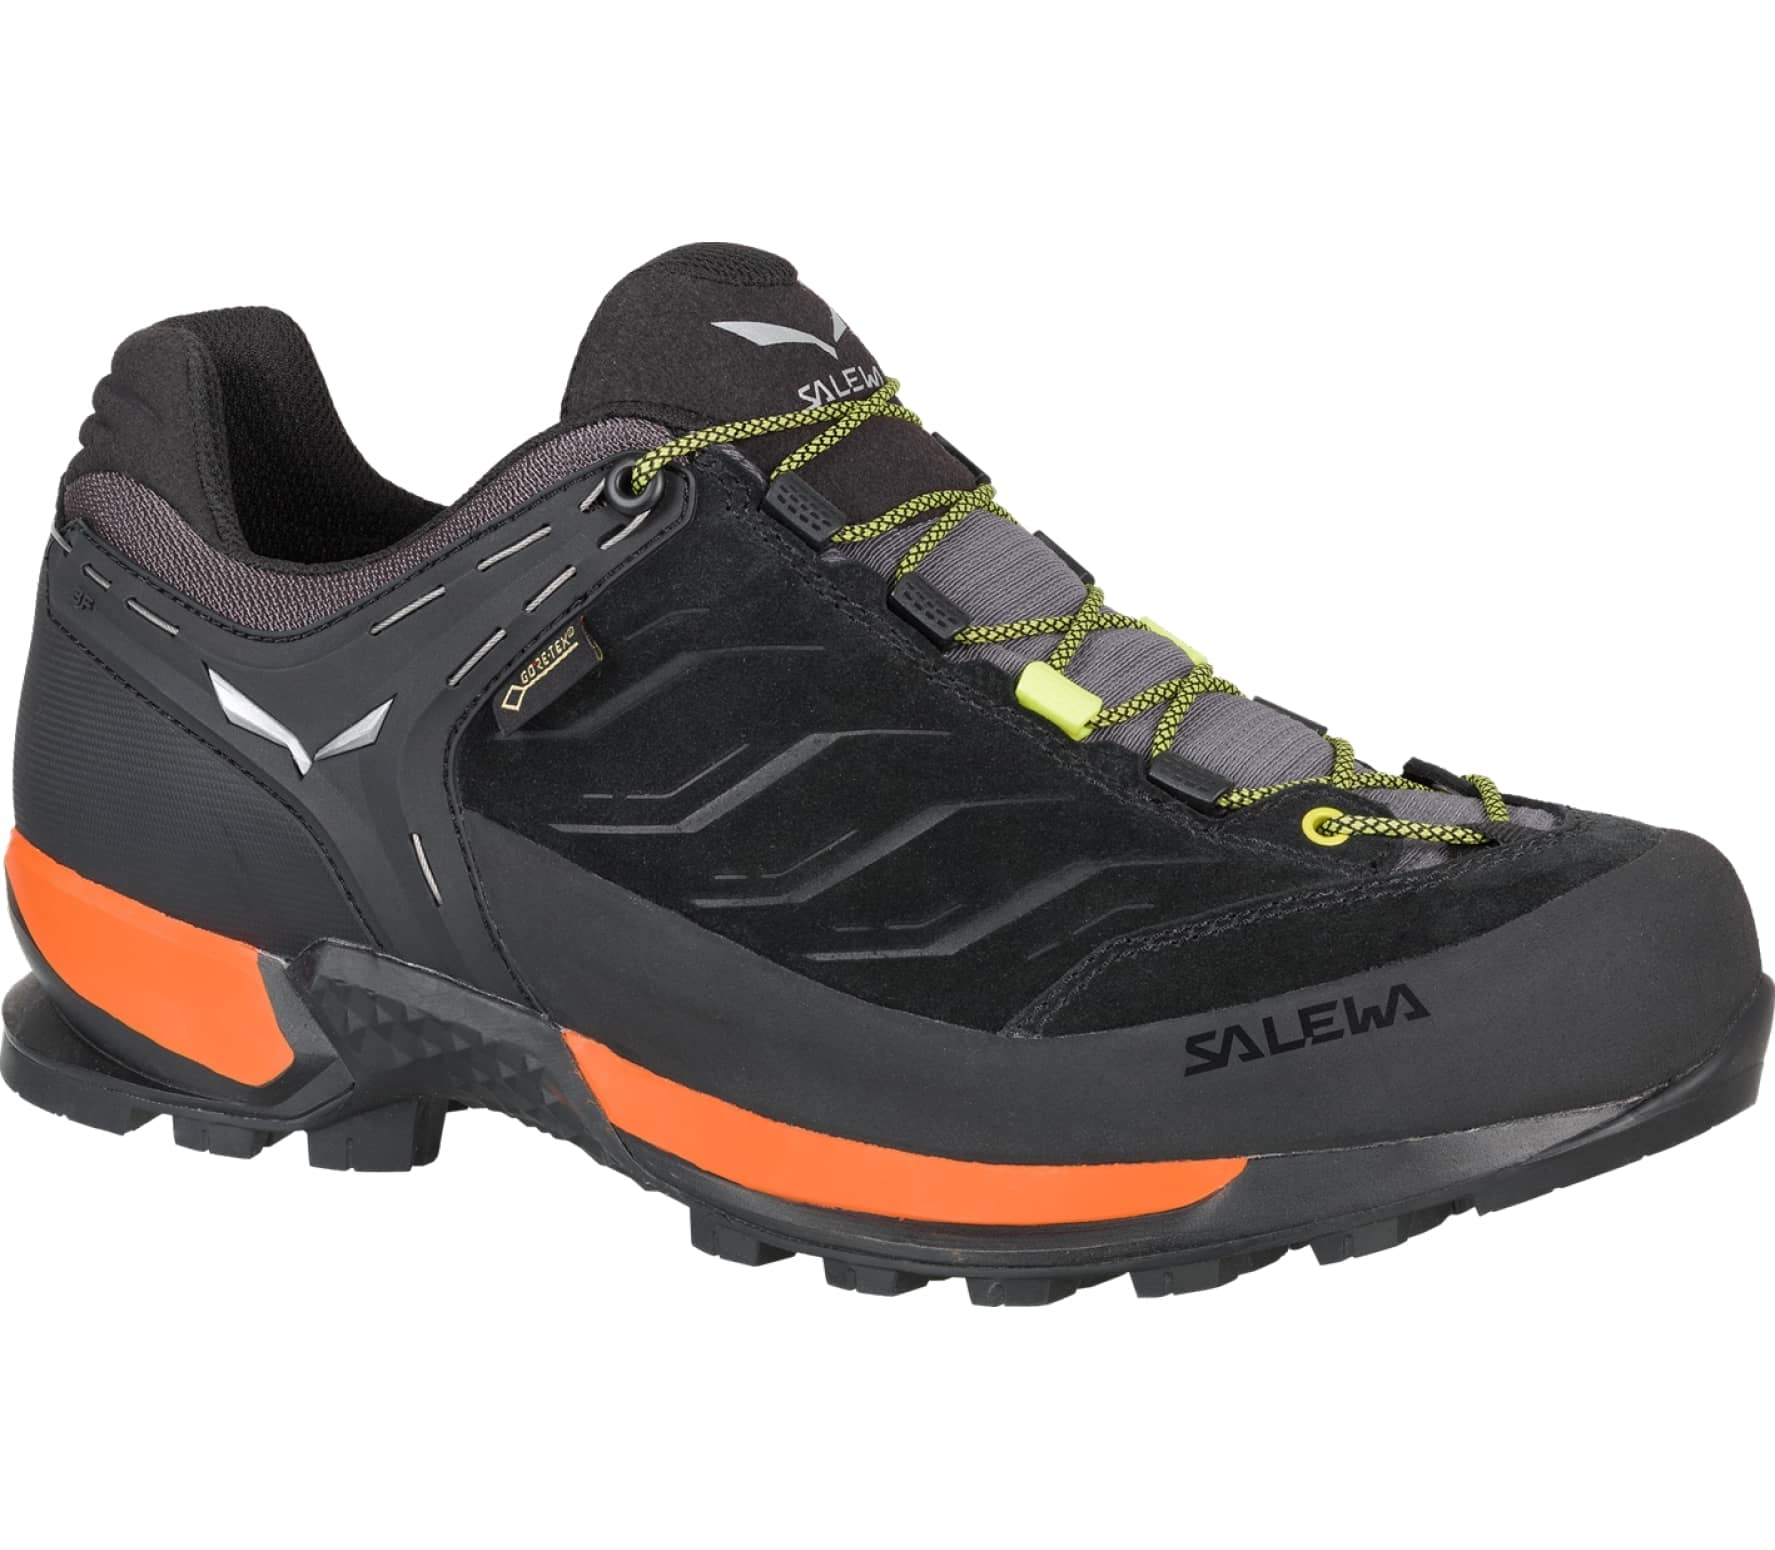 Salewa - MTN Trainer GTX Herren Bergschuh (schwarz/orange) - EU 41 - UK 7,5